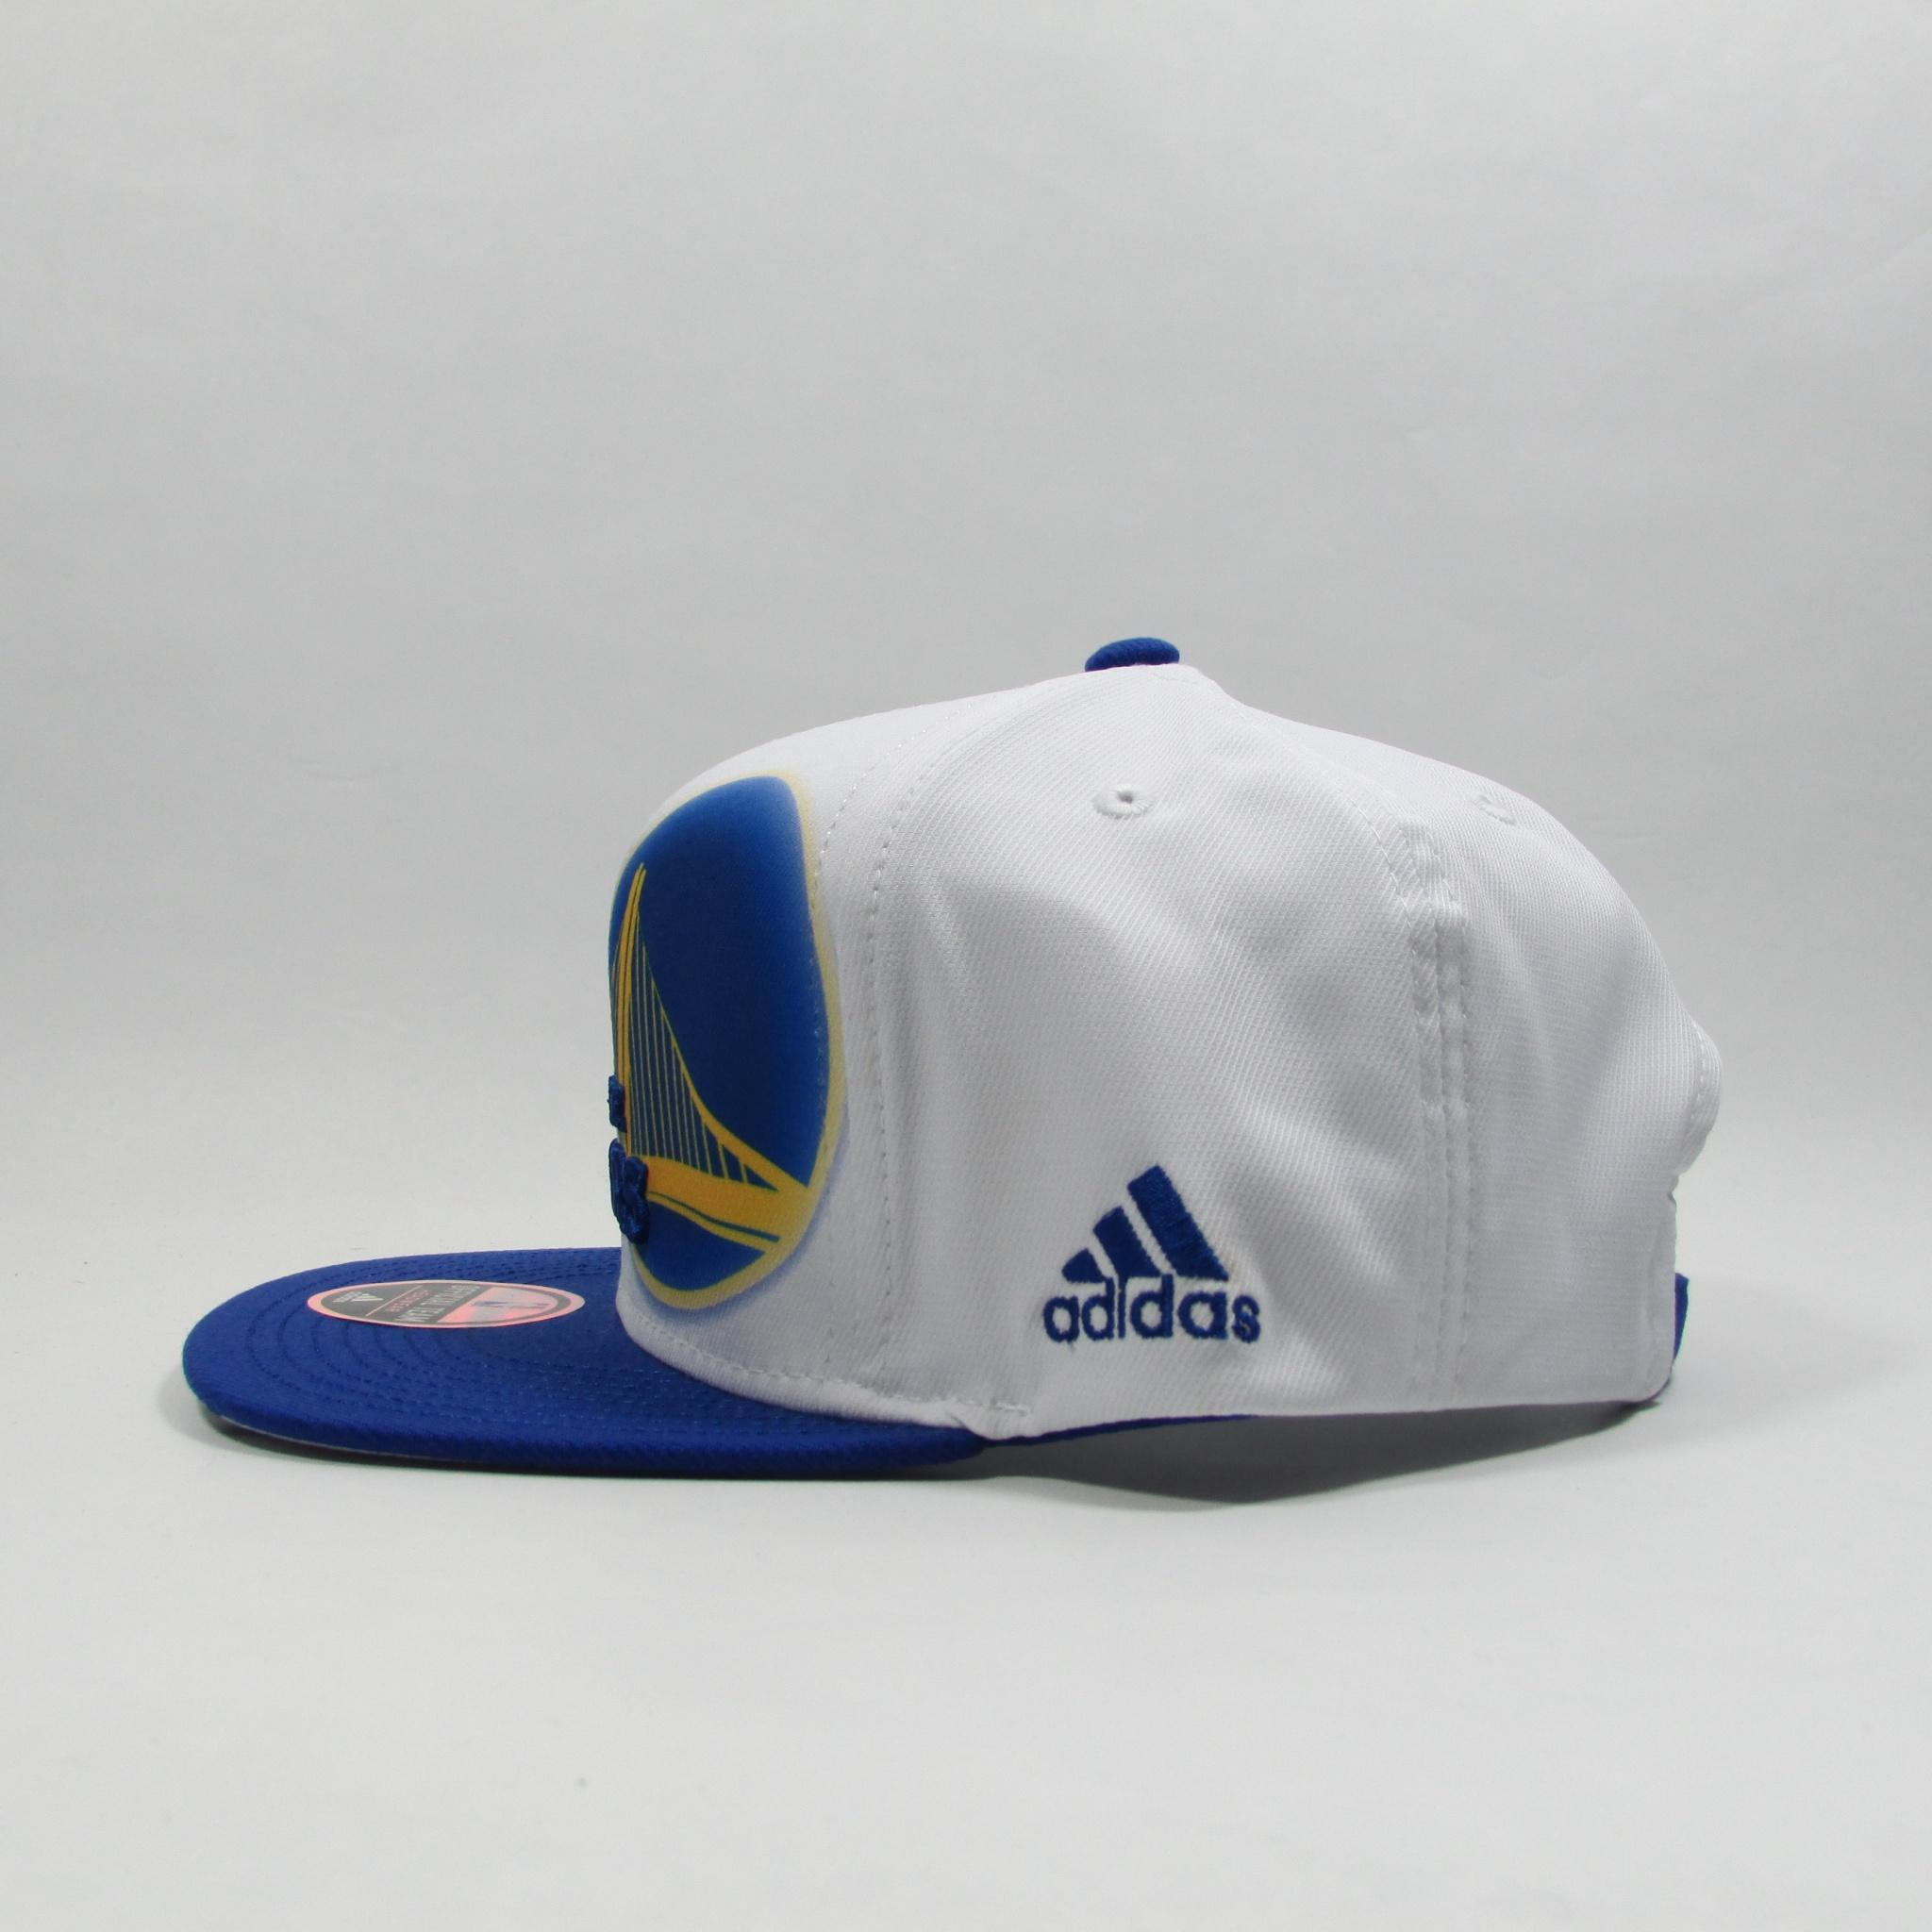 Golden State Warriors Bay Bridge Basketball Strapback Hat Adidas